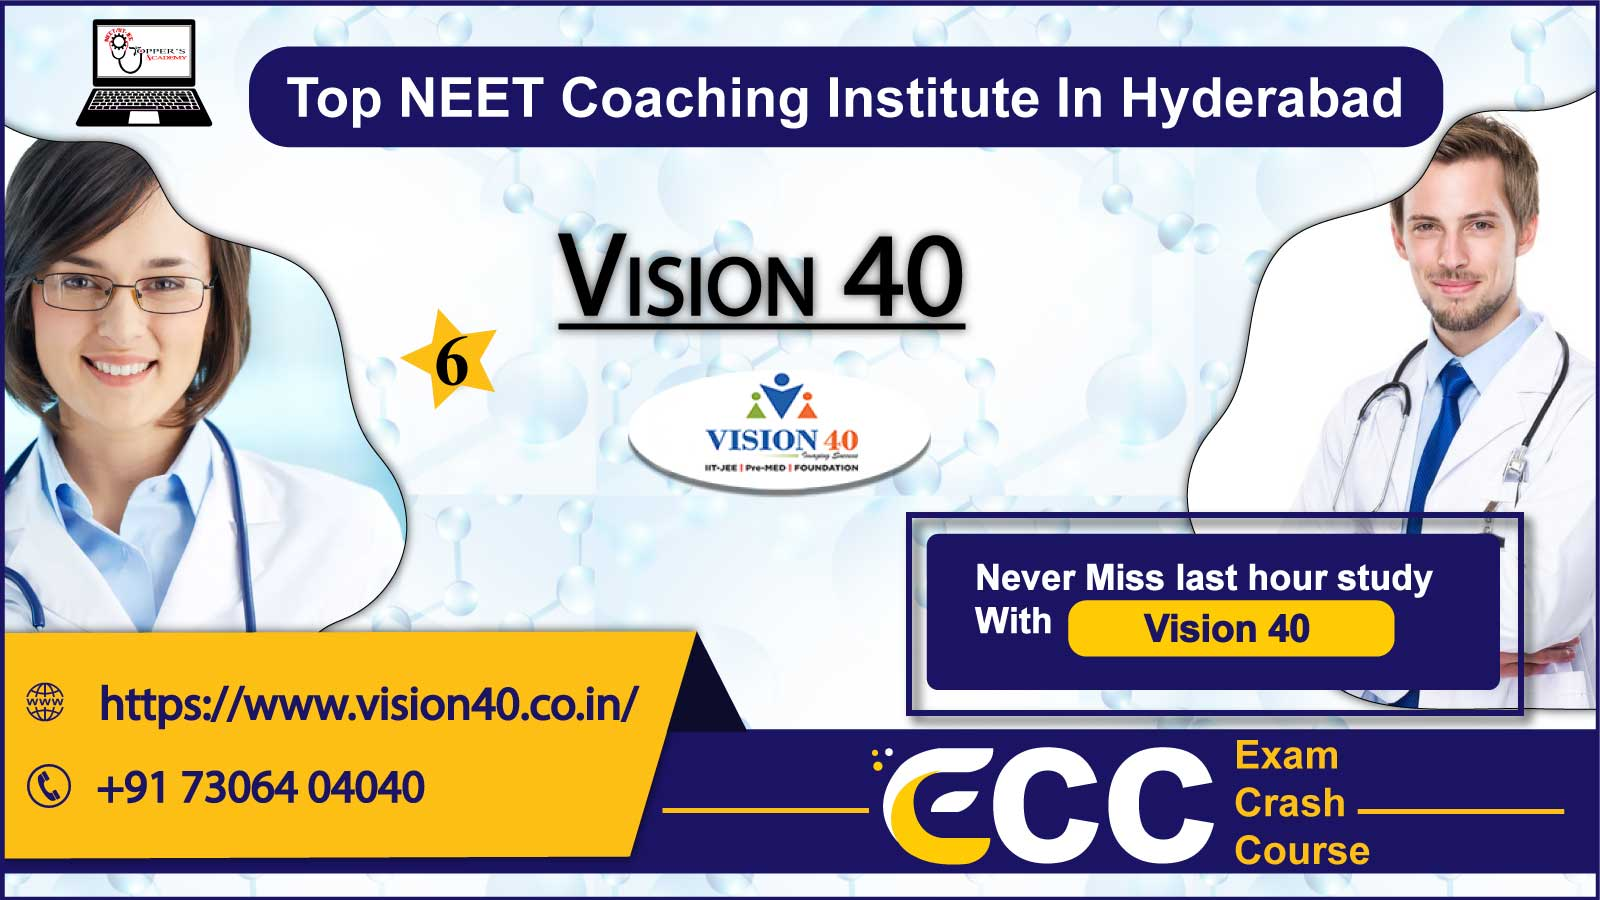 Vision 40 NEET Coaching in Hyderabad